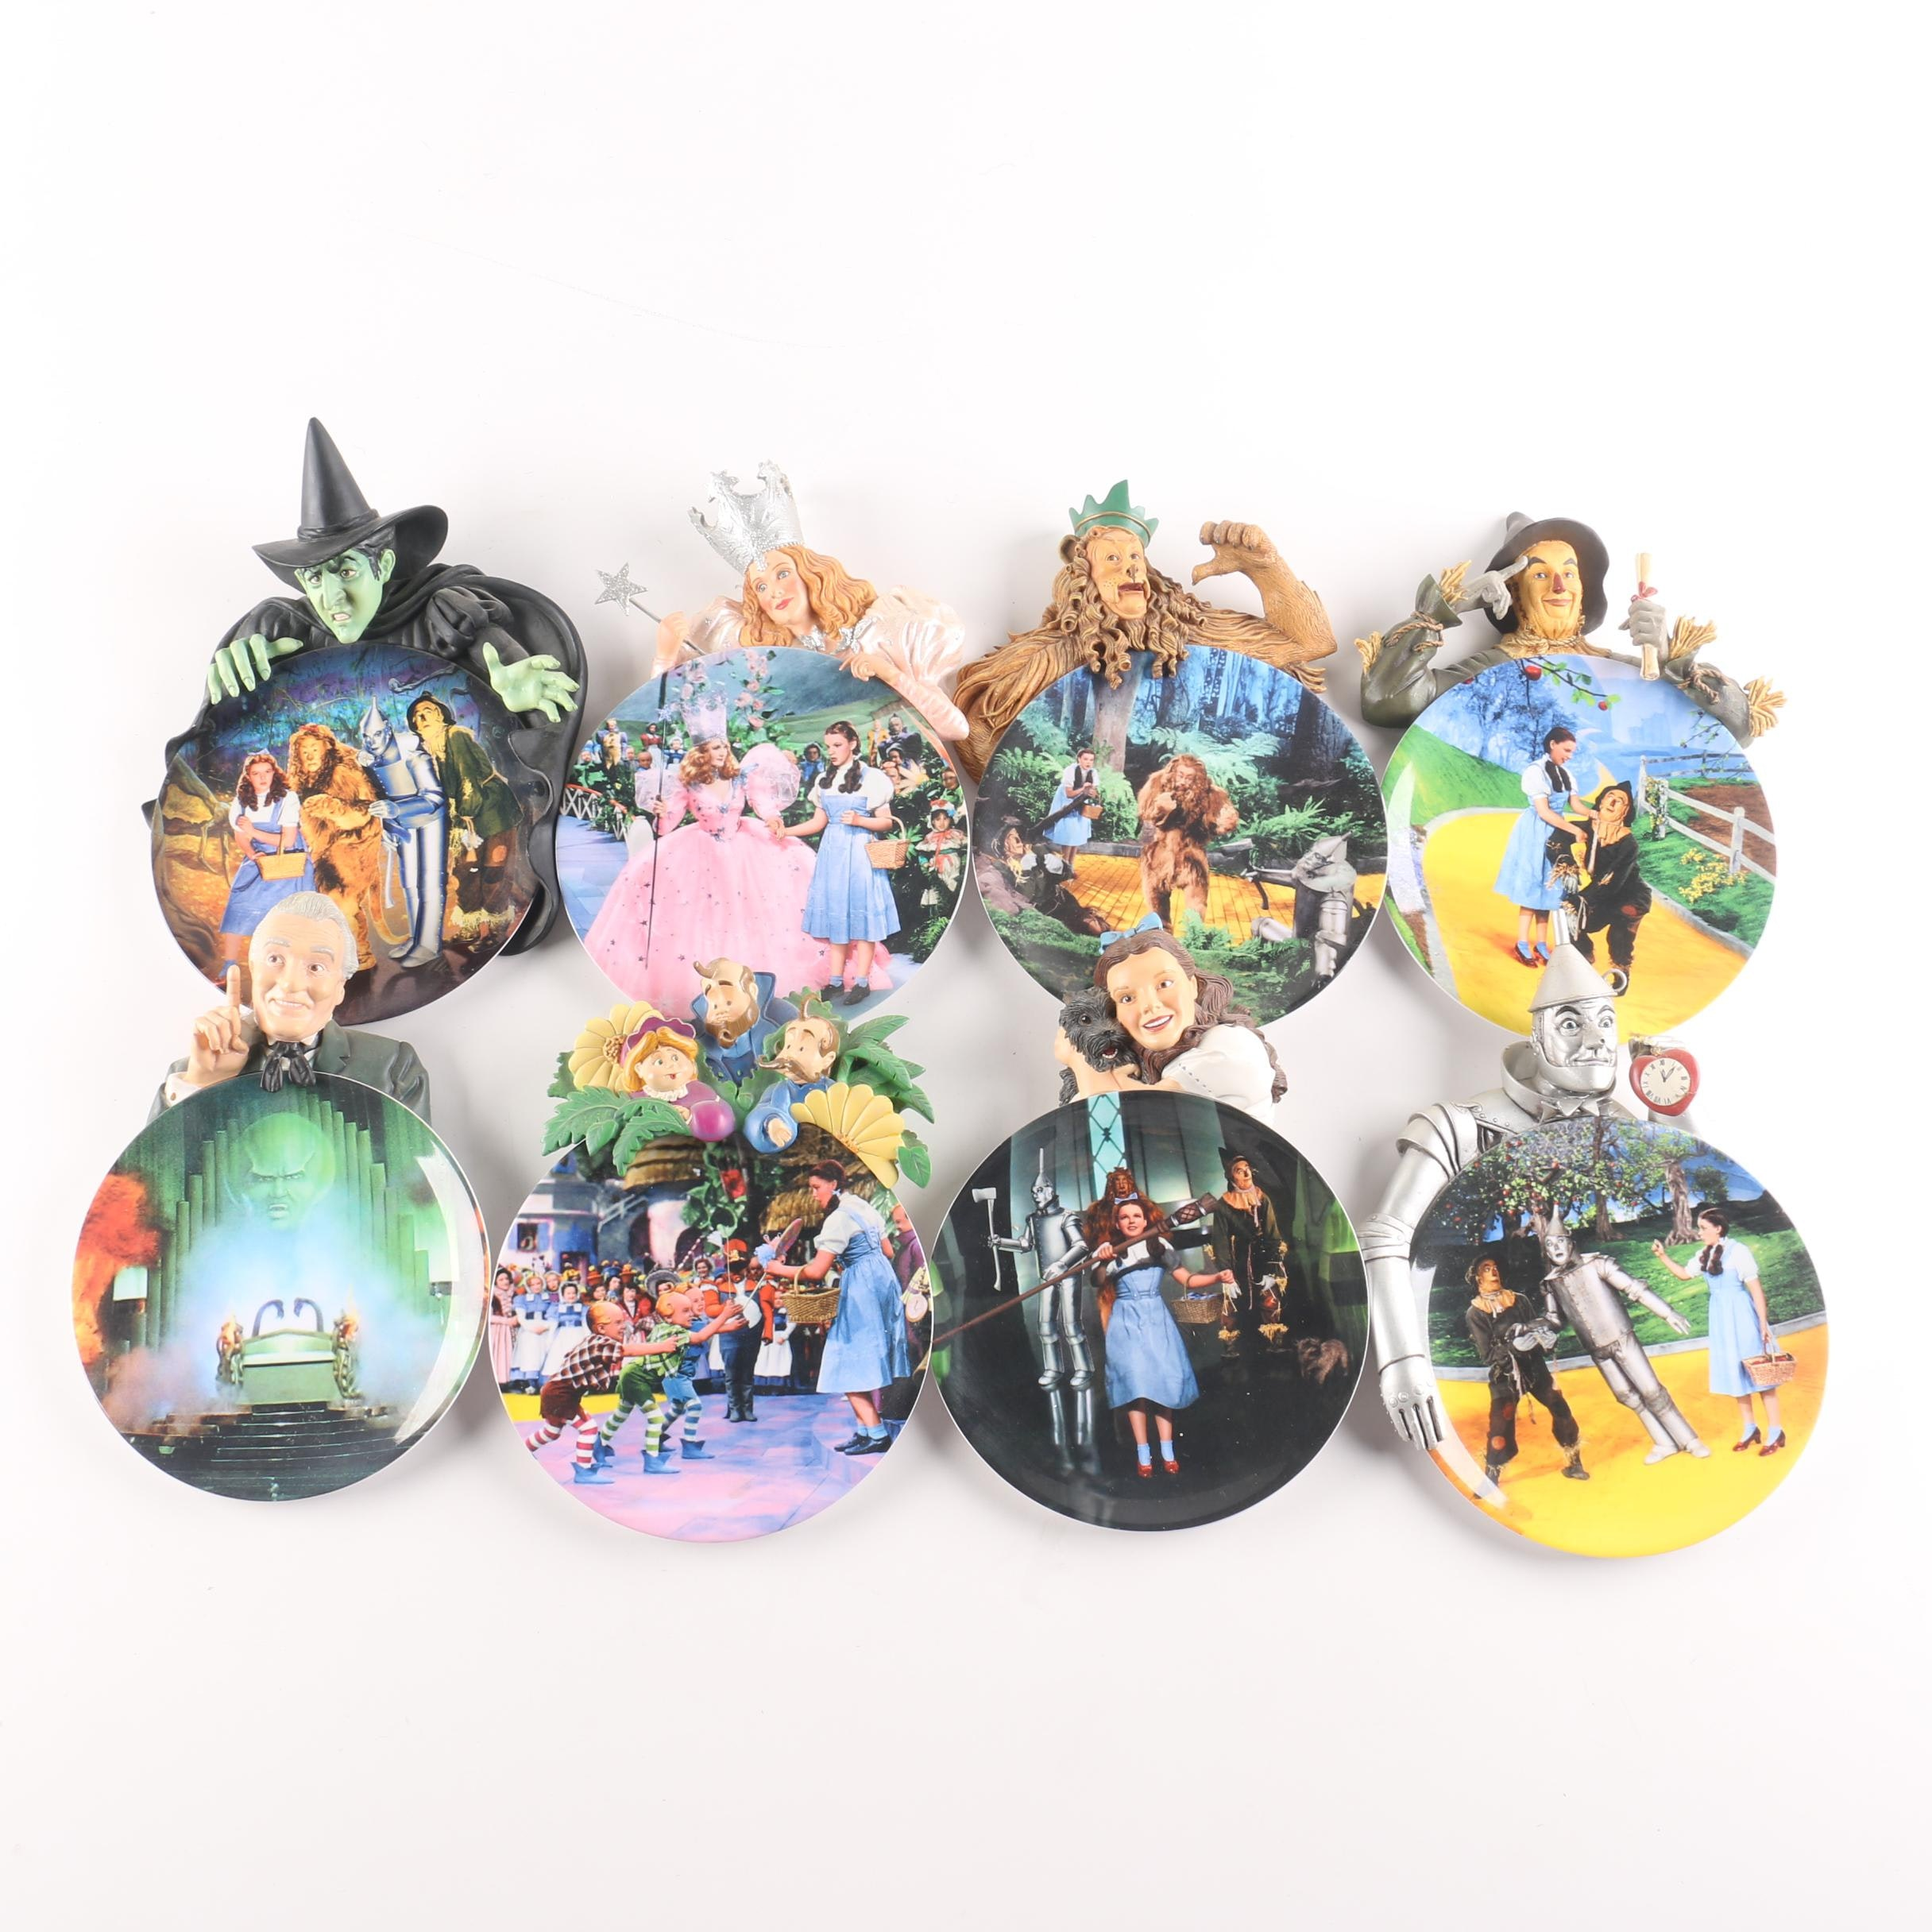 "Bradford Exchange ""Adventures In Oz"" Plates With Attached Figures"